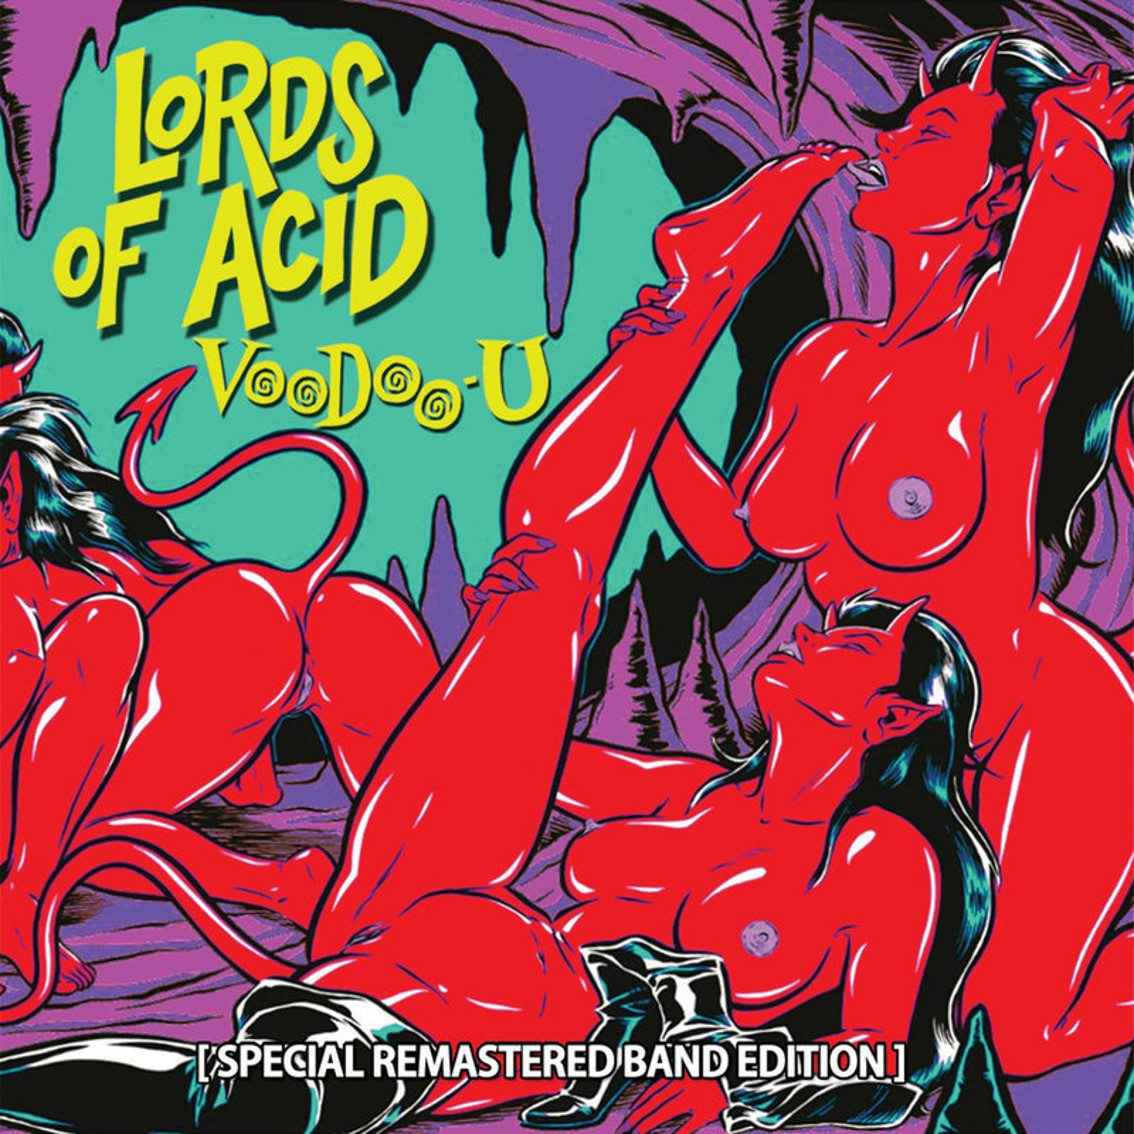 Lords of Acid see 'Voodoo-U' reissued with lots of bonus tracks on CD and double vinyl